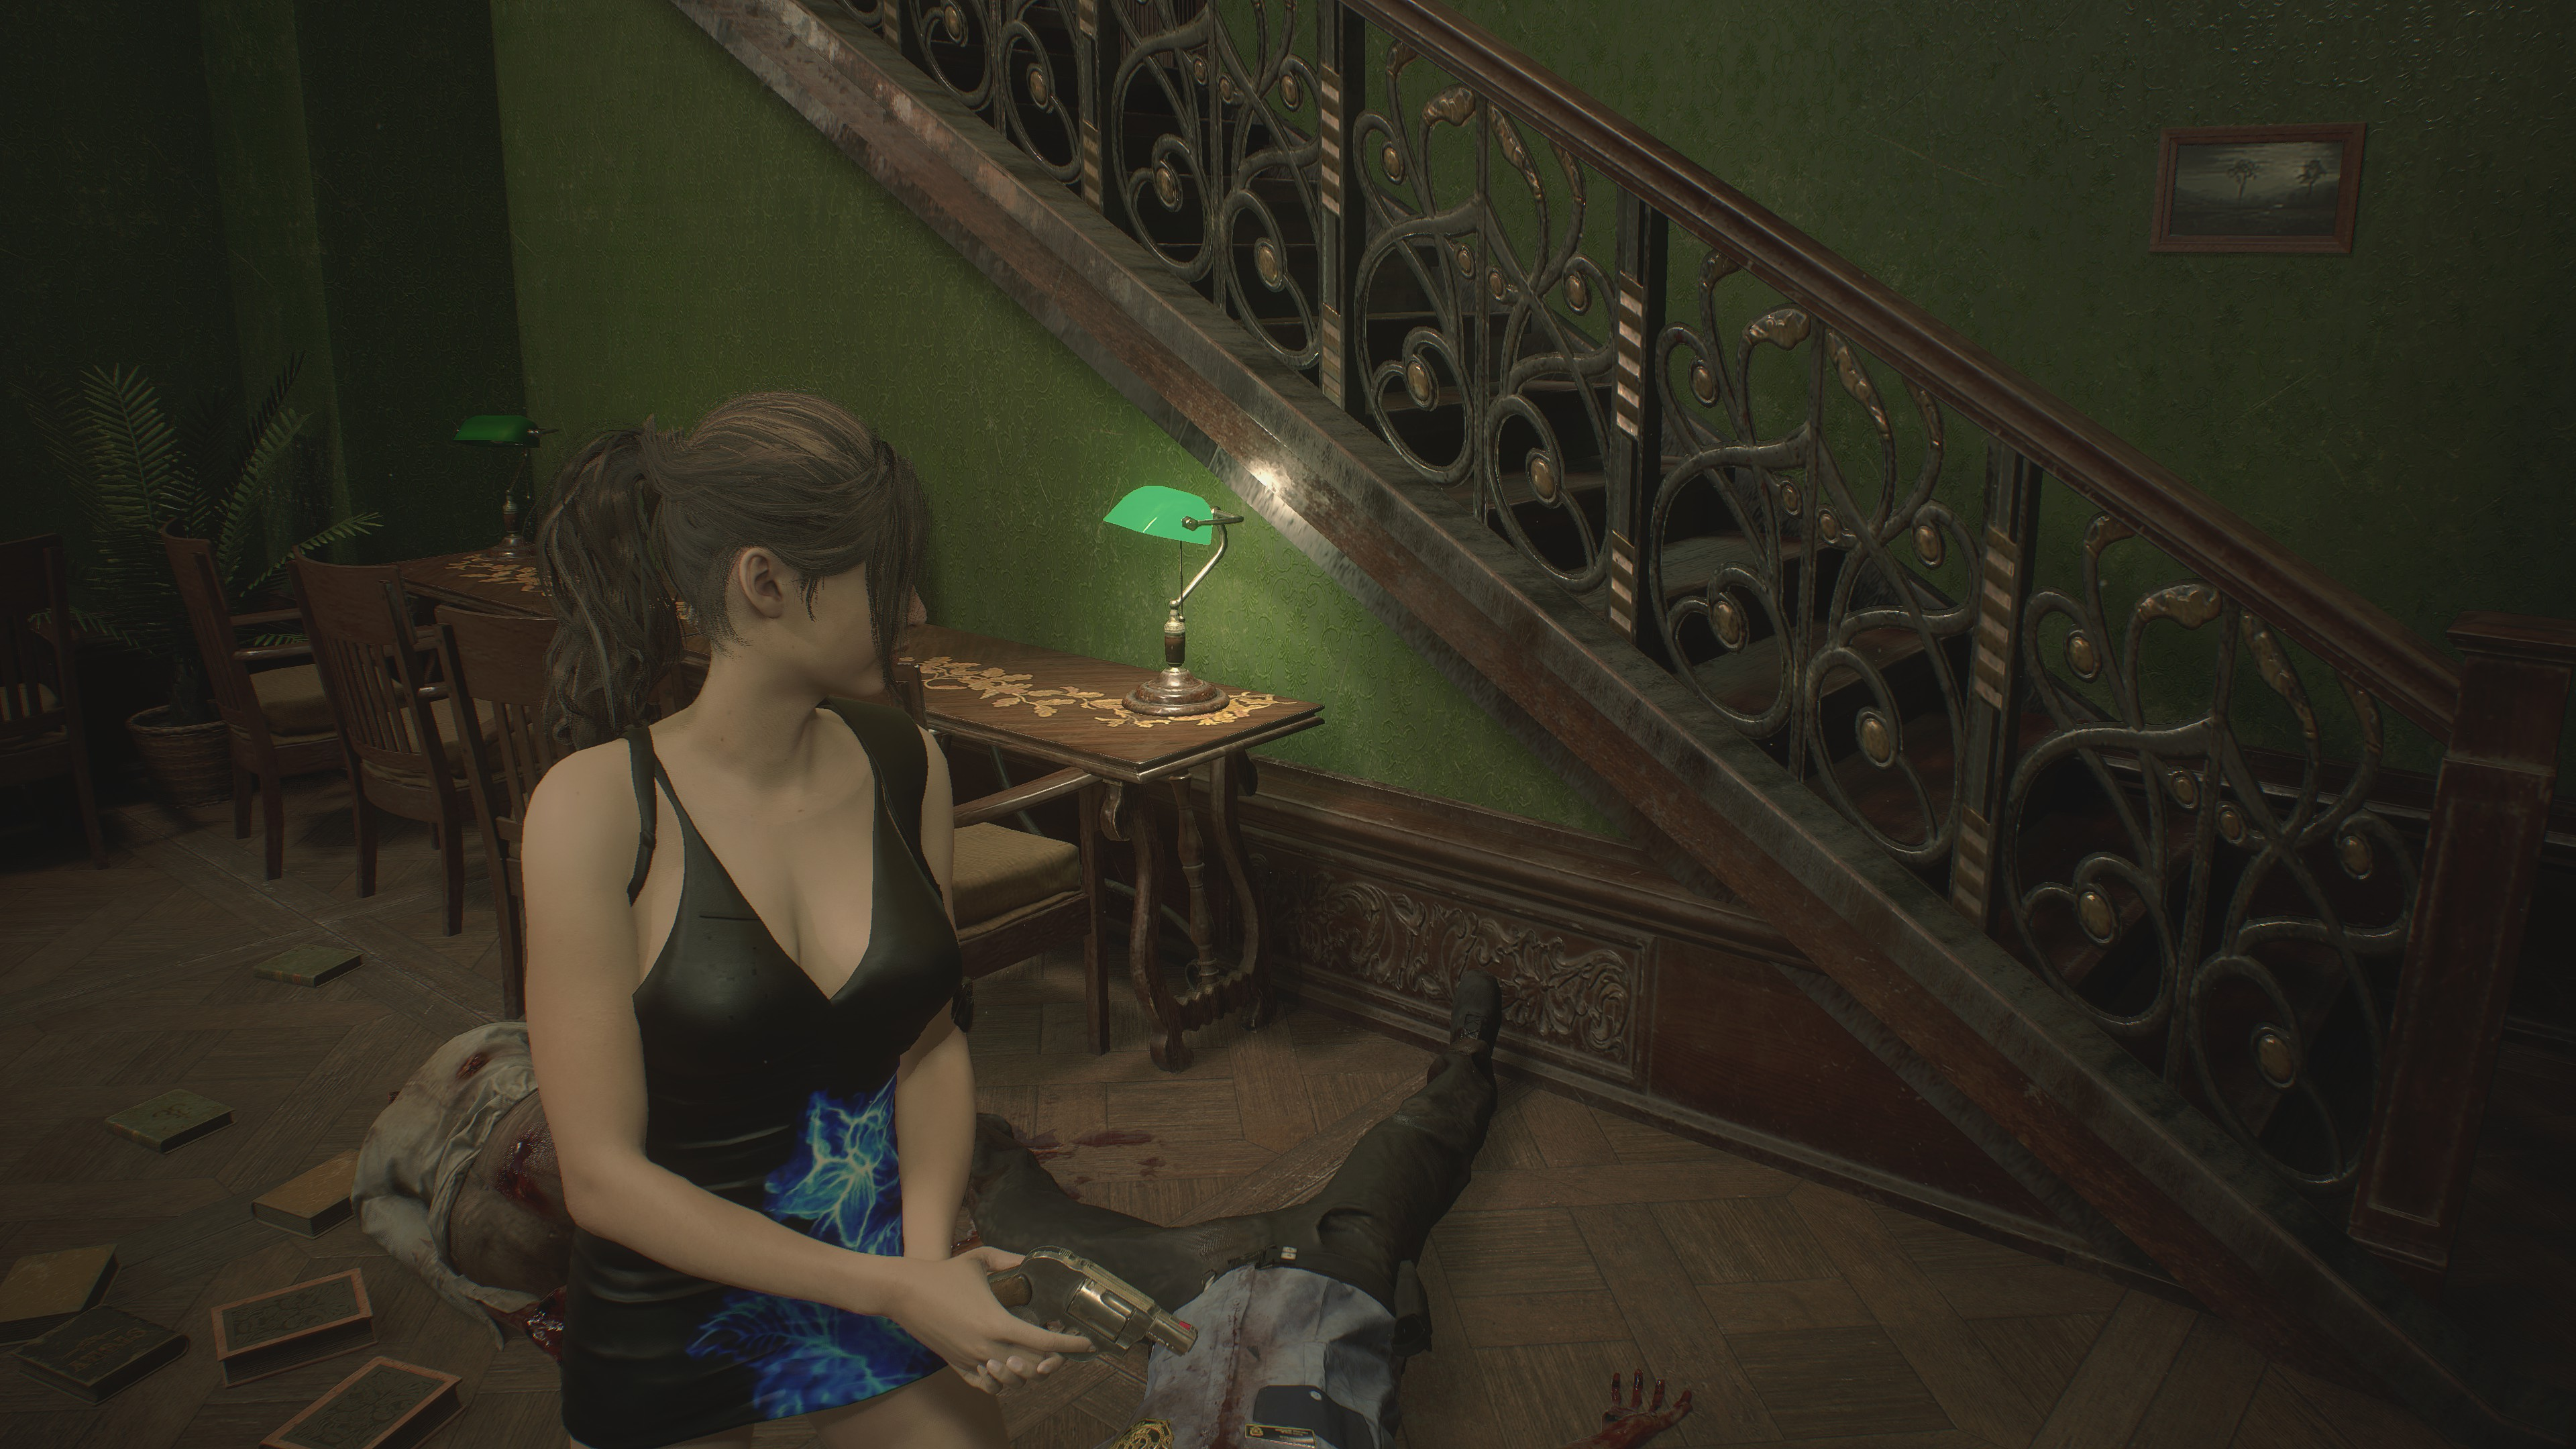 RESIDENT EVIL 2 / BIOHAZARD RE:2 Claire Queen Of Attraction mod 4k ultra graphics rtx - Resident Evil 2